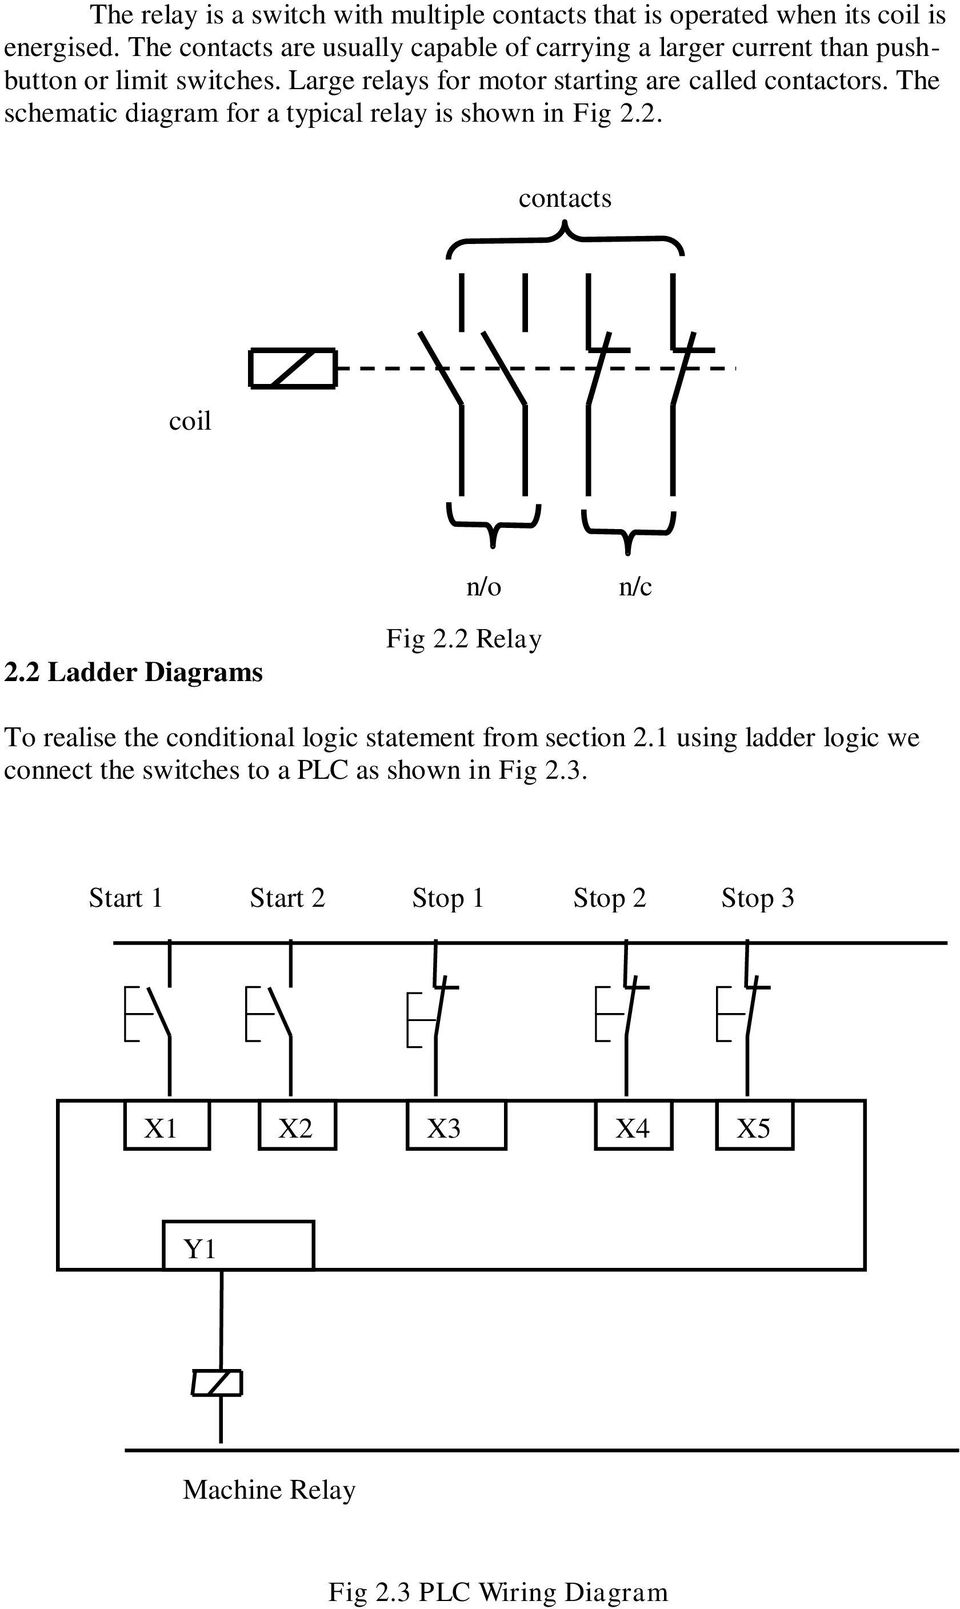 hight resolution of large relays for motor starting are called contactors the schematic diagram for a typical relay